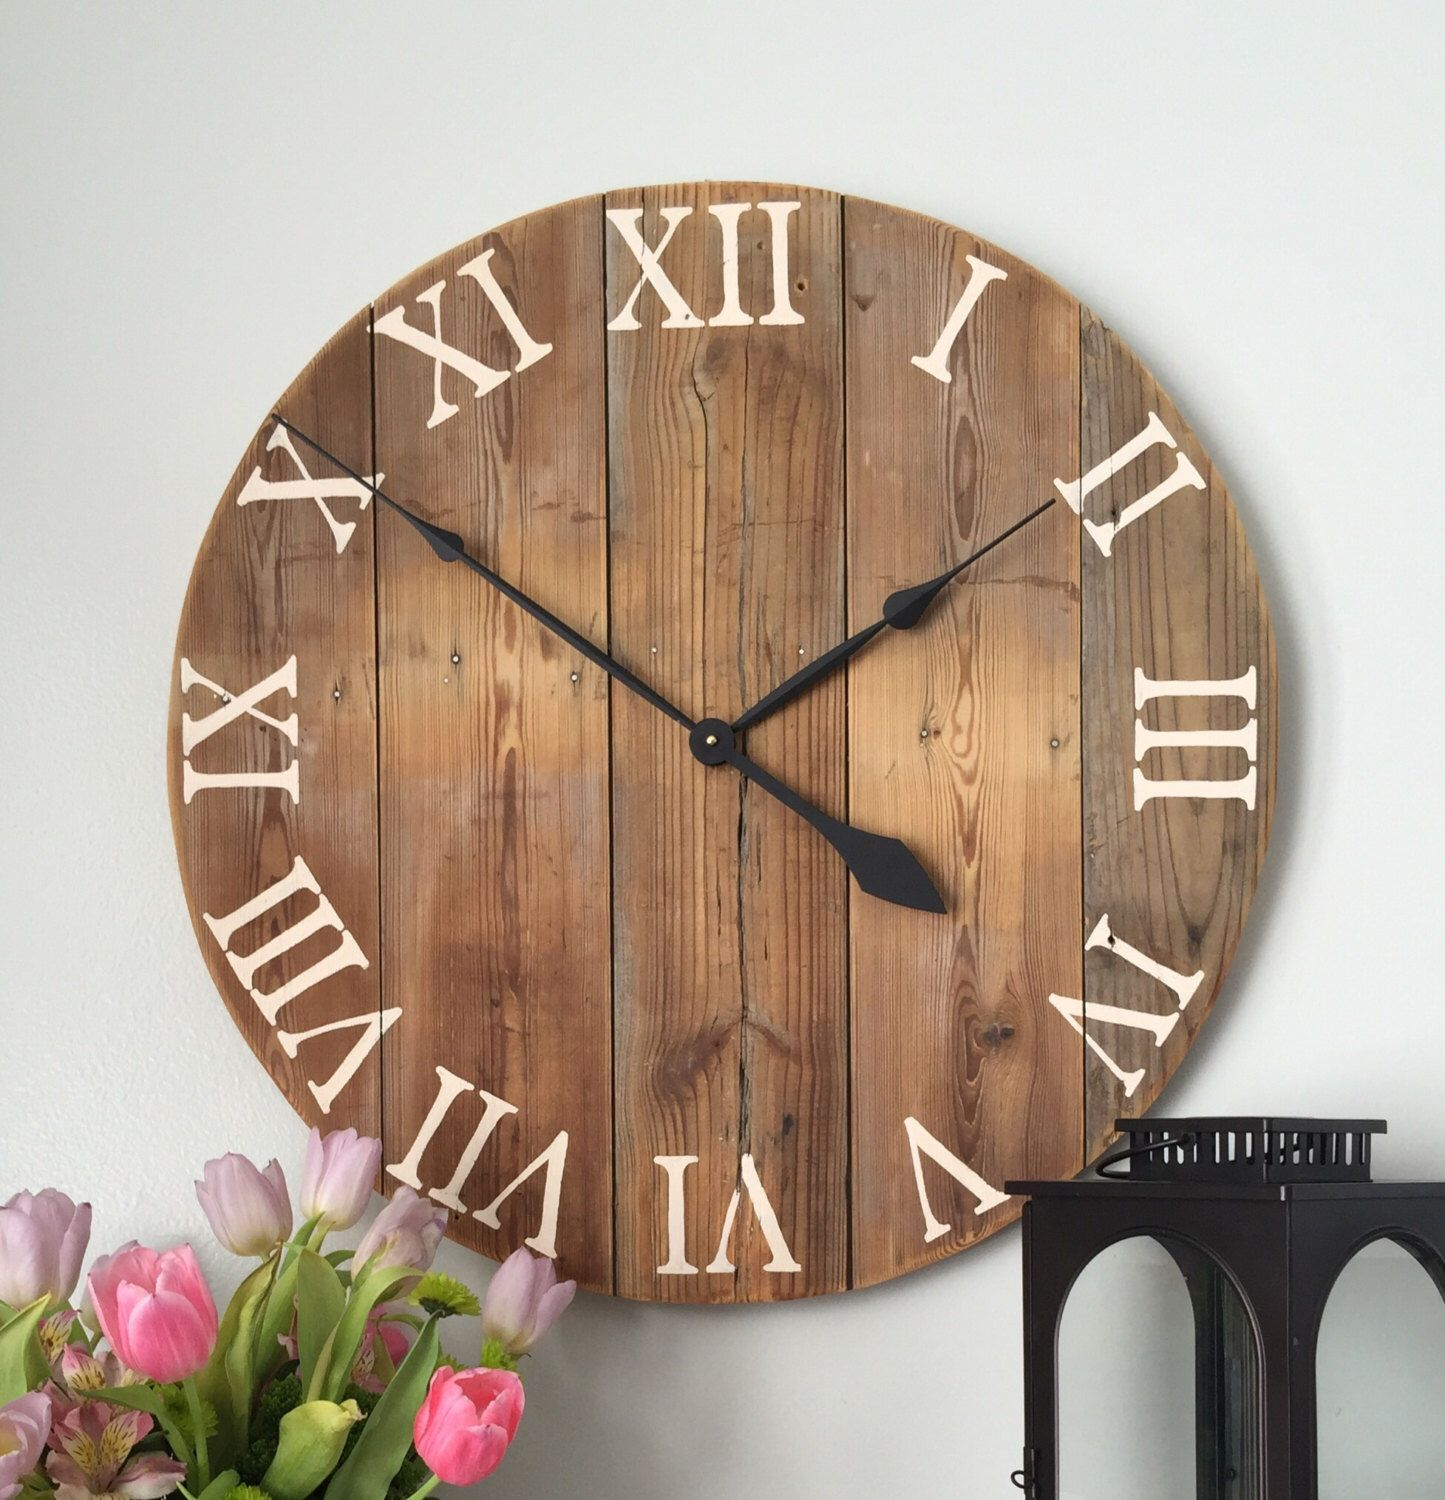 25 in clock large wall clock rustic wall clock oversized wall large wooden wall clock made from pine boards wood comes from barn siding that is mildly weathered and still in great condition amipublicfo Image collections